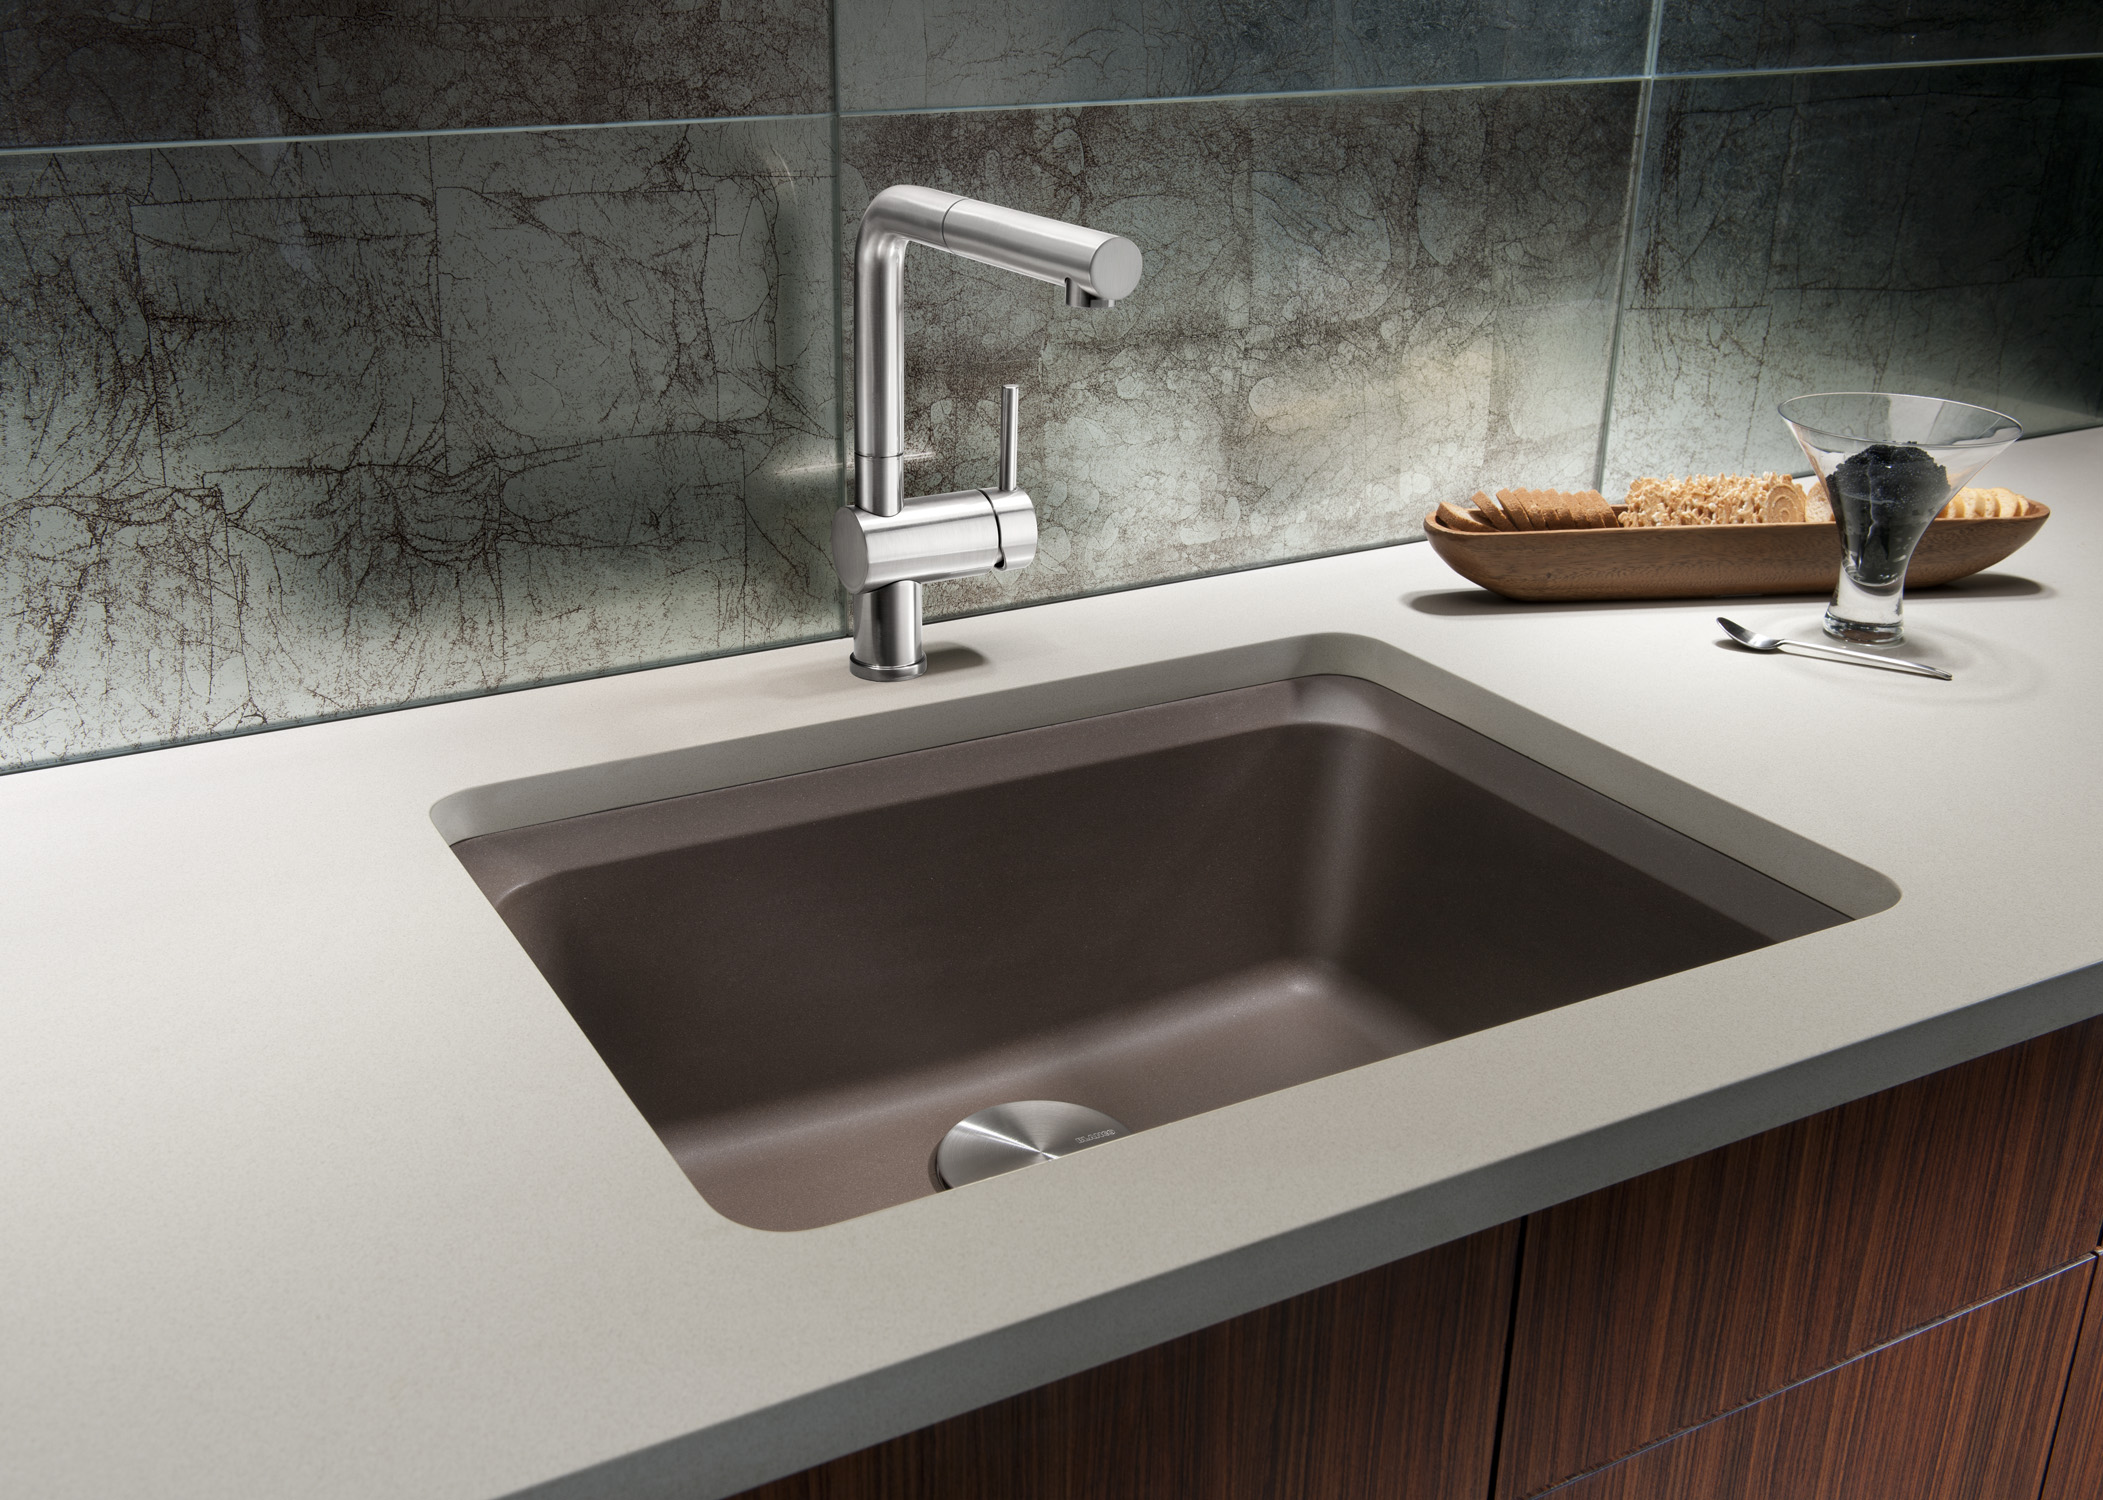 Delicieux BLANCO SILGRANIT II VISION Kitchen SinkThe New BLANCO SILGRANIT® II VISION™  Designer Sink Offers Luxurious Usability At Great Value Without  Compromising ...